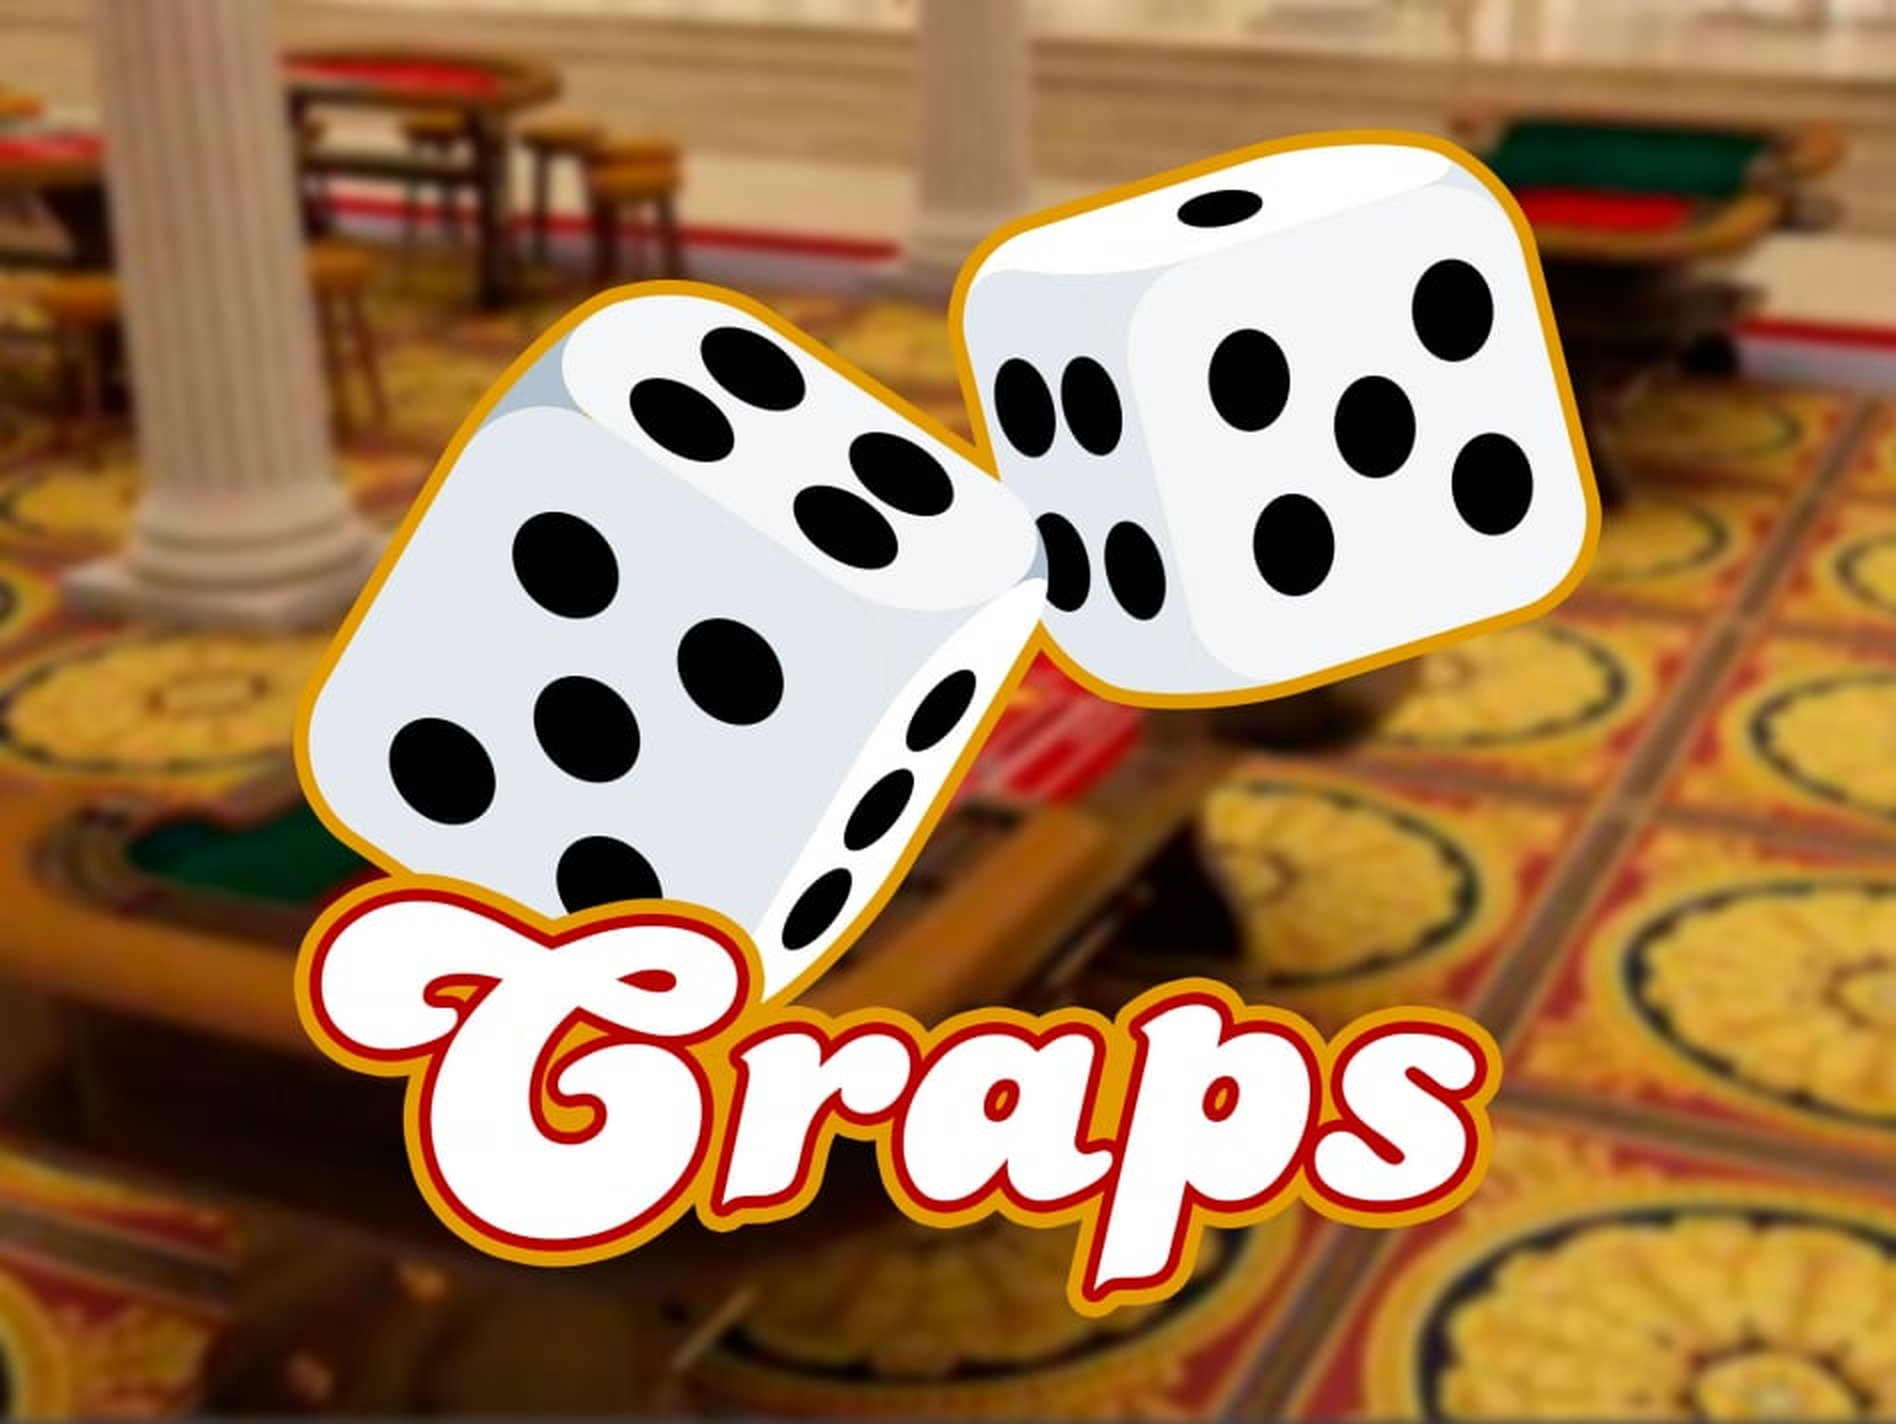 The Craps (1x2gaming) Online Slot Demo Game by 1x2 Gaming